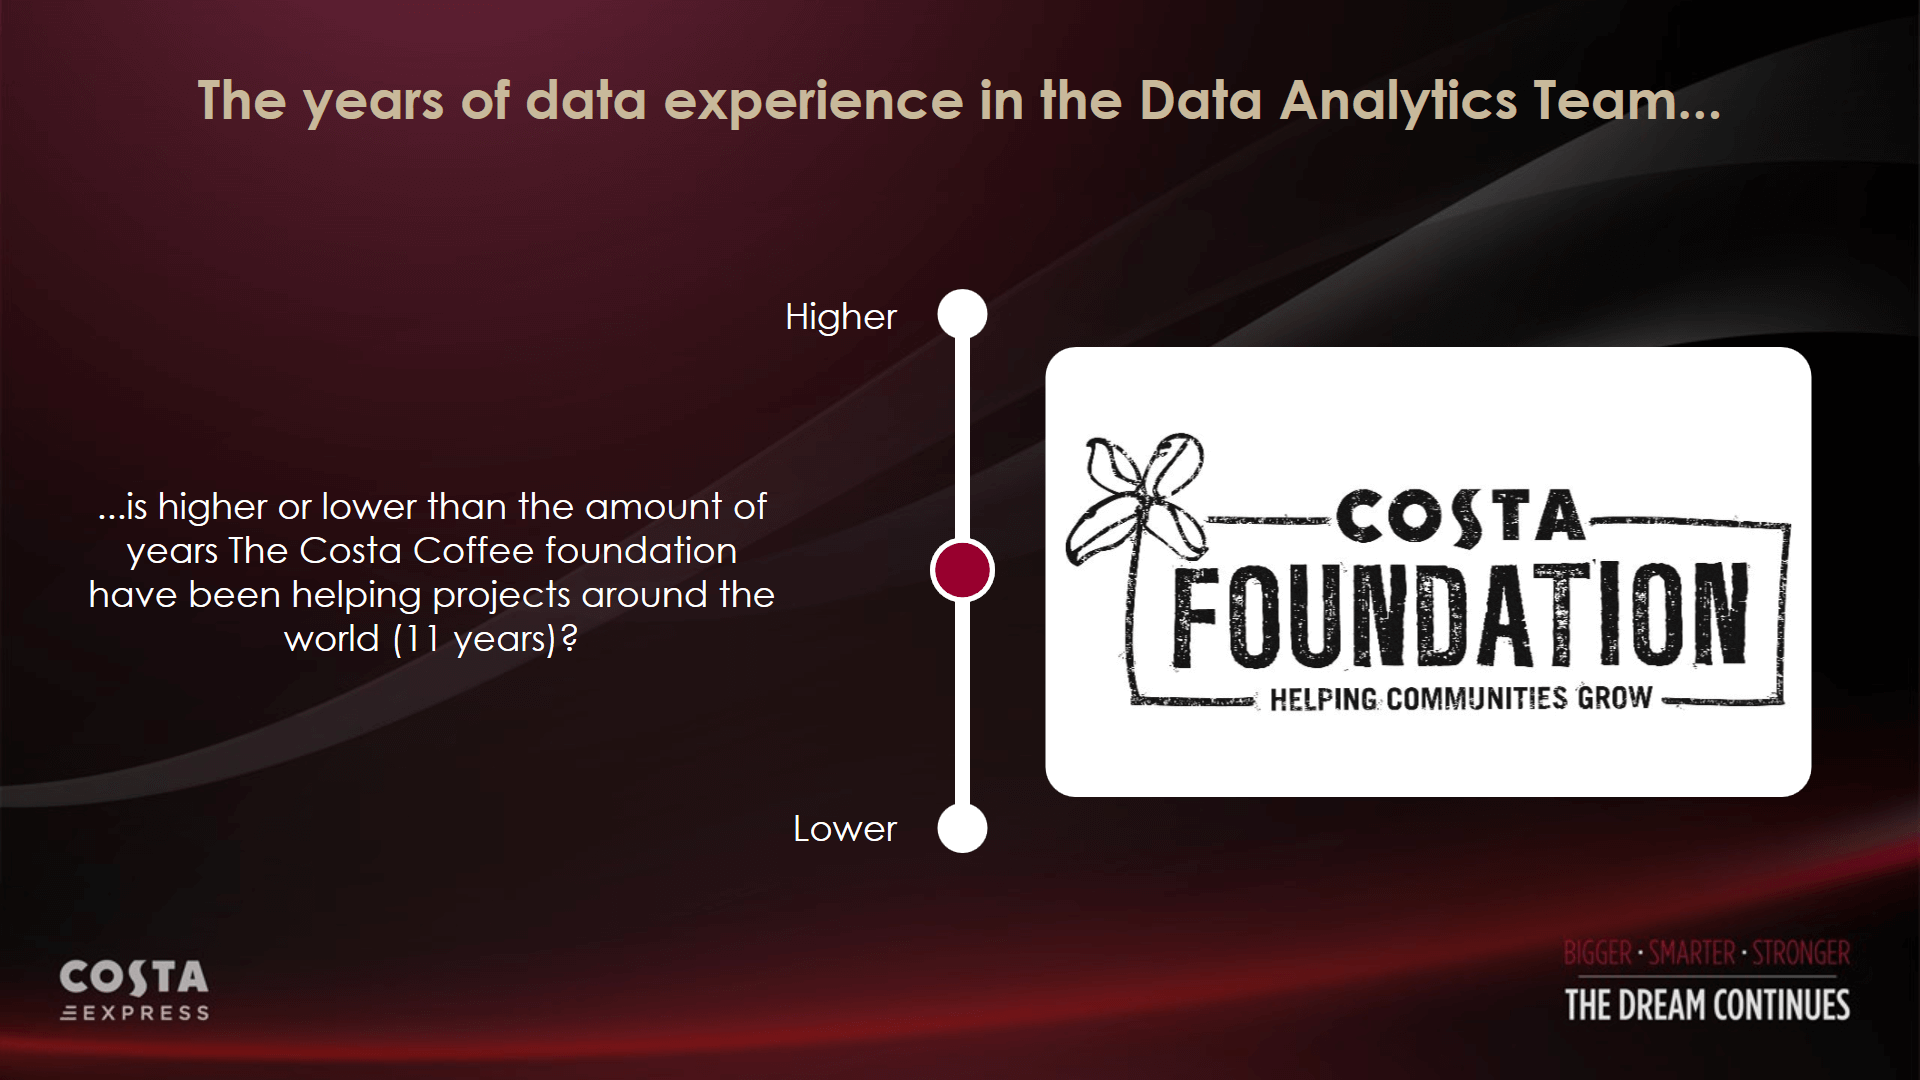 Costa foundation interactive experience - Intuiface software